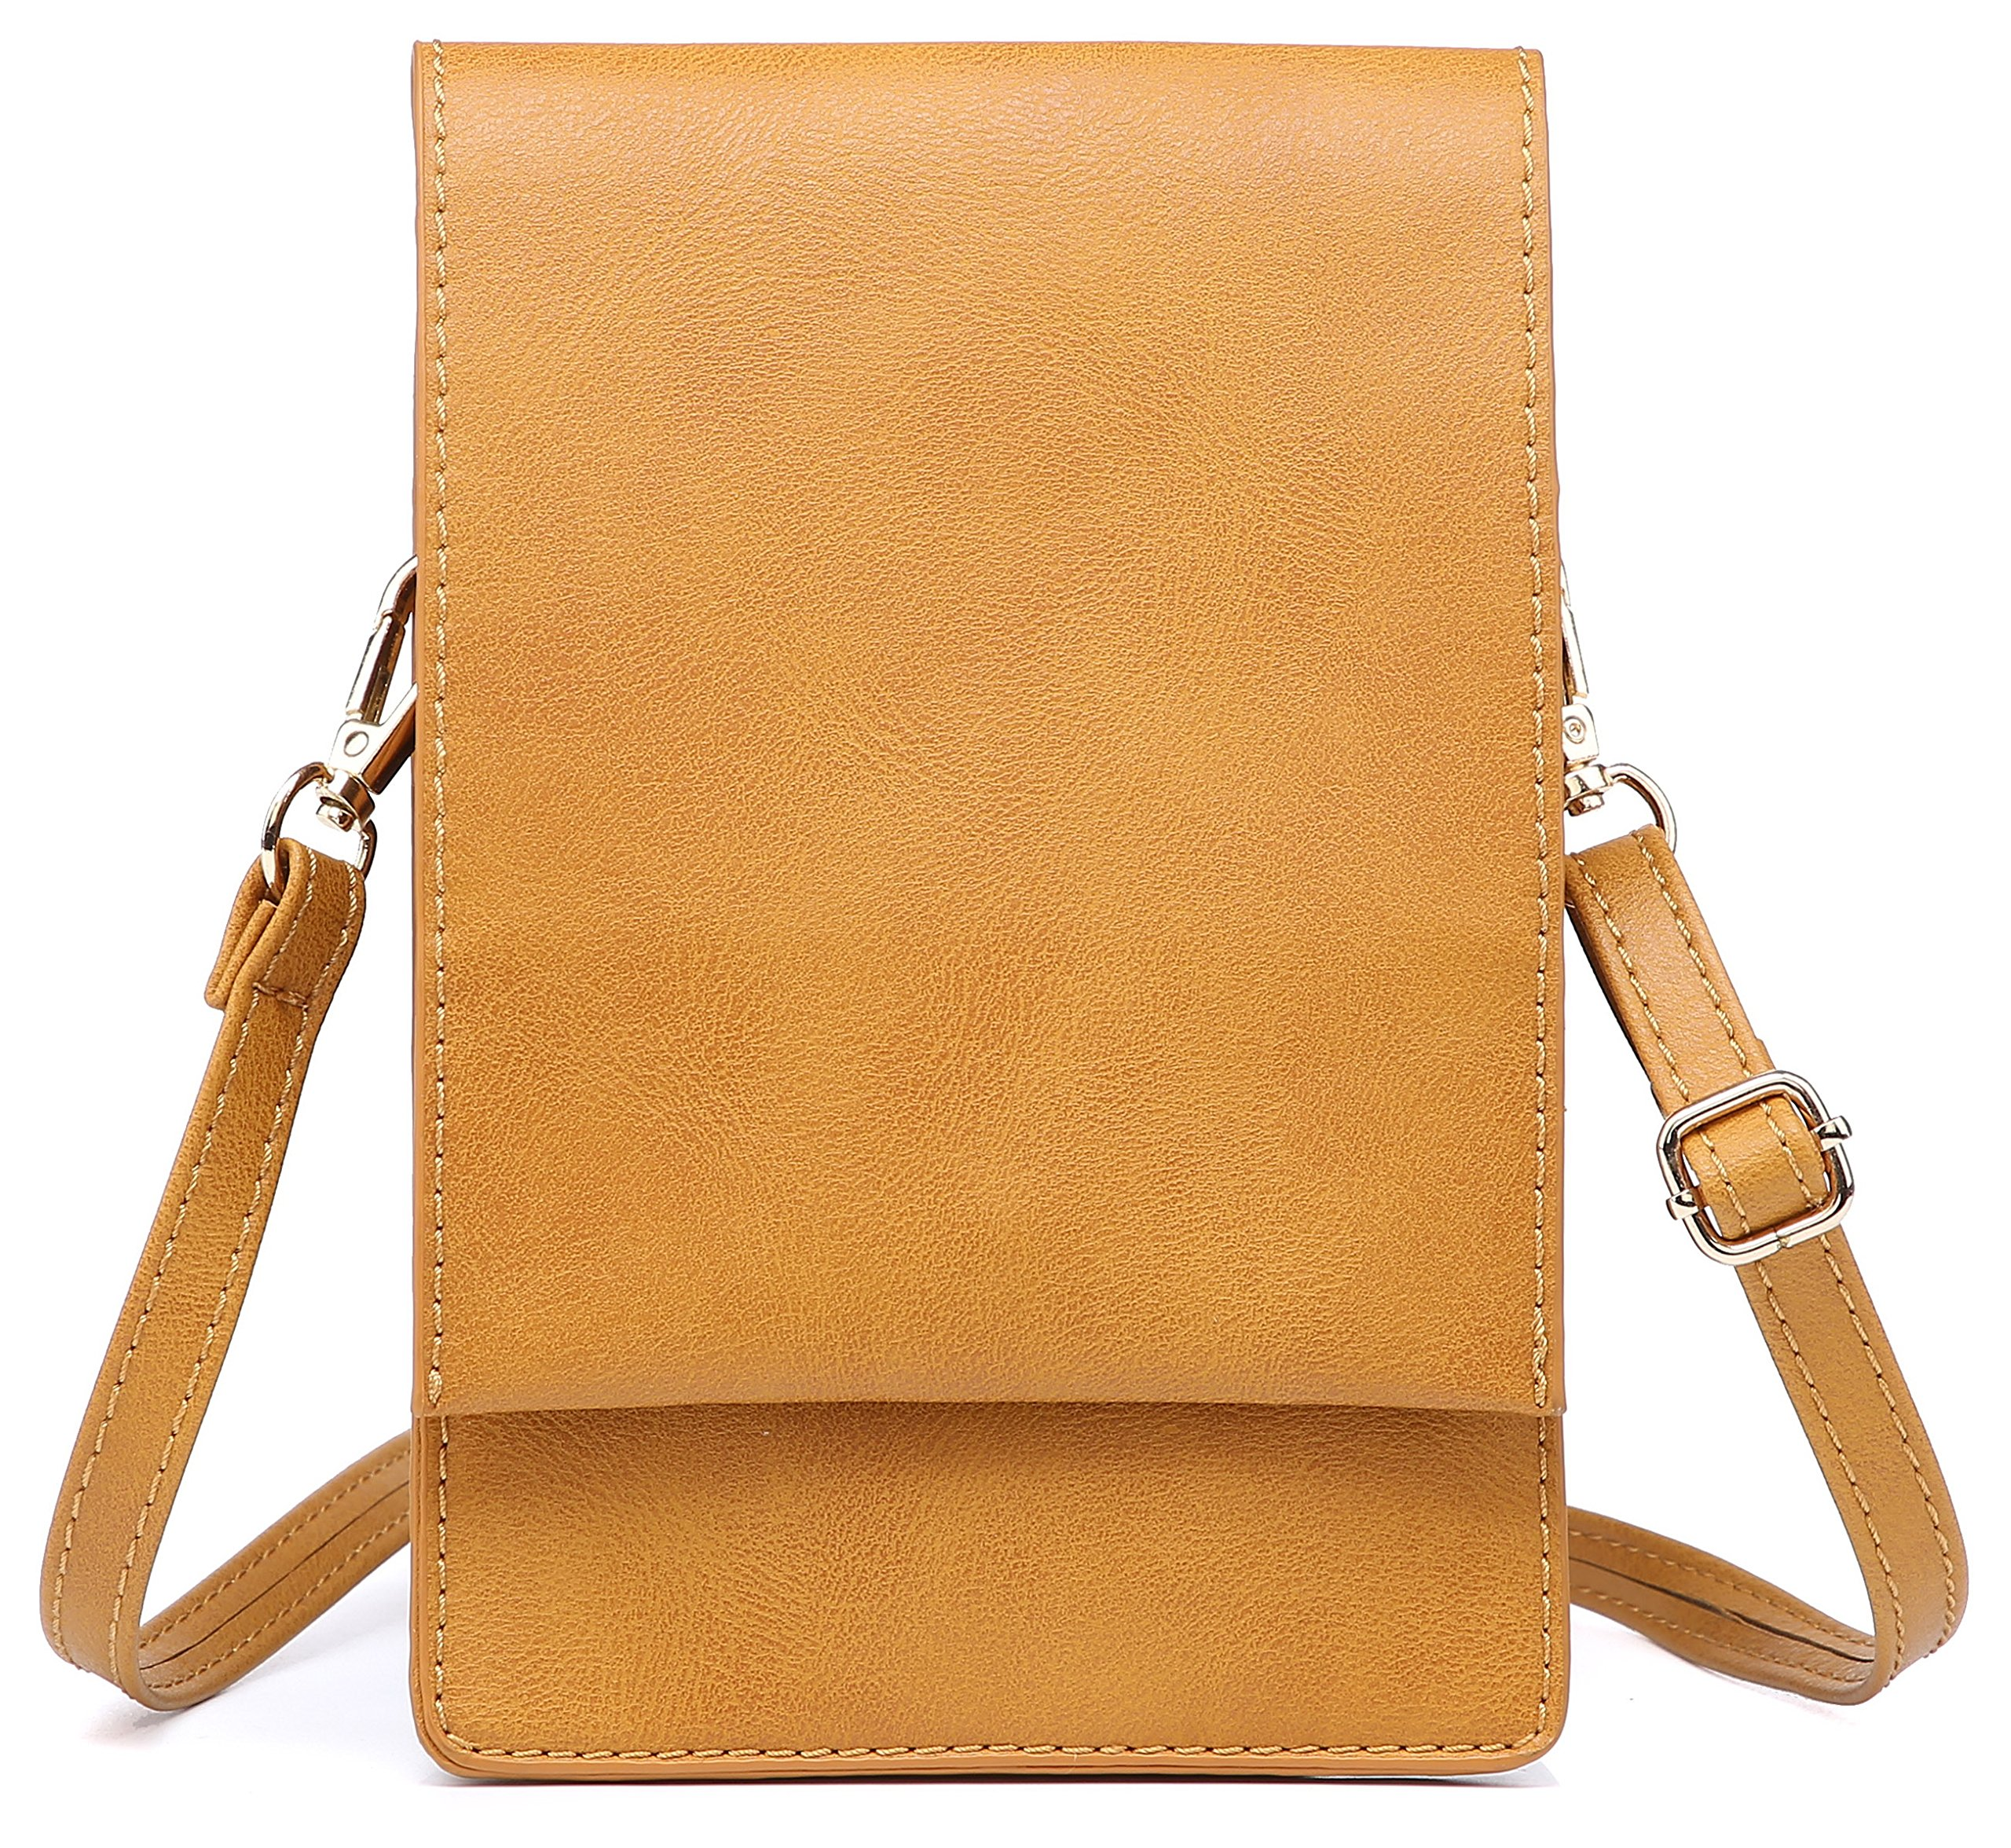 Women Small Crossbody Purse Cell Phone Pouch Wallet Shoulder Bag For 6 Inches (Camel)